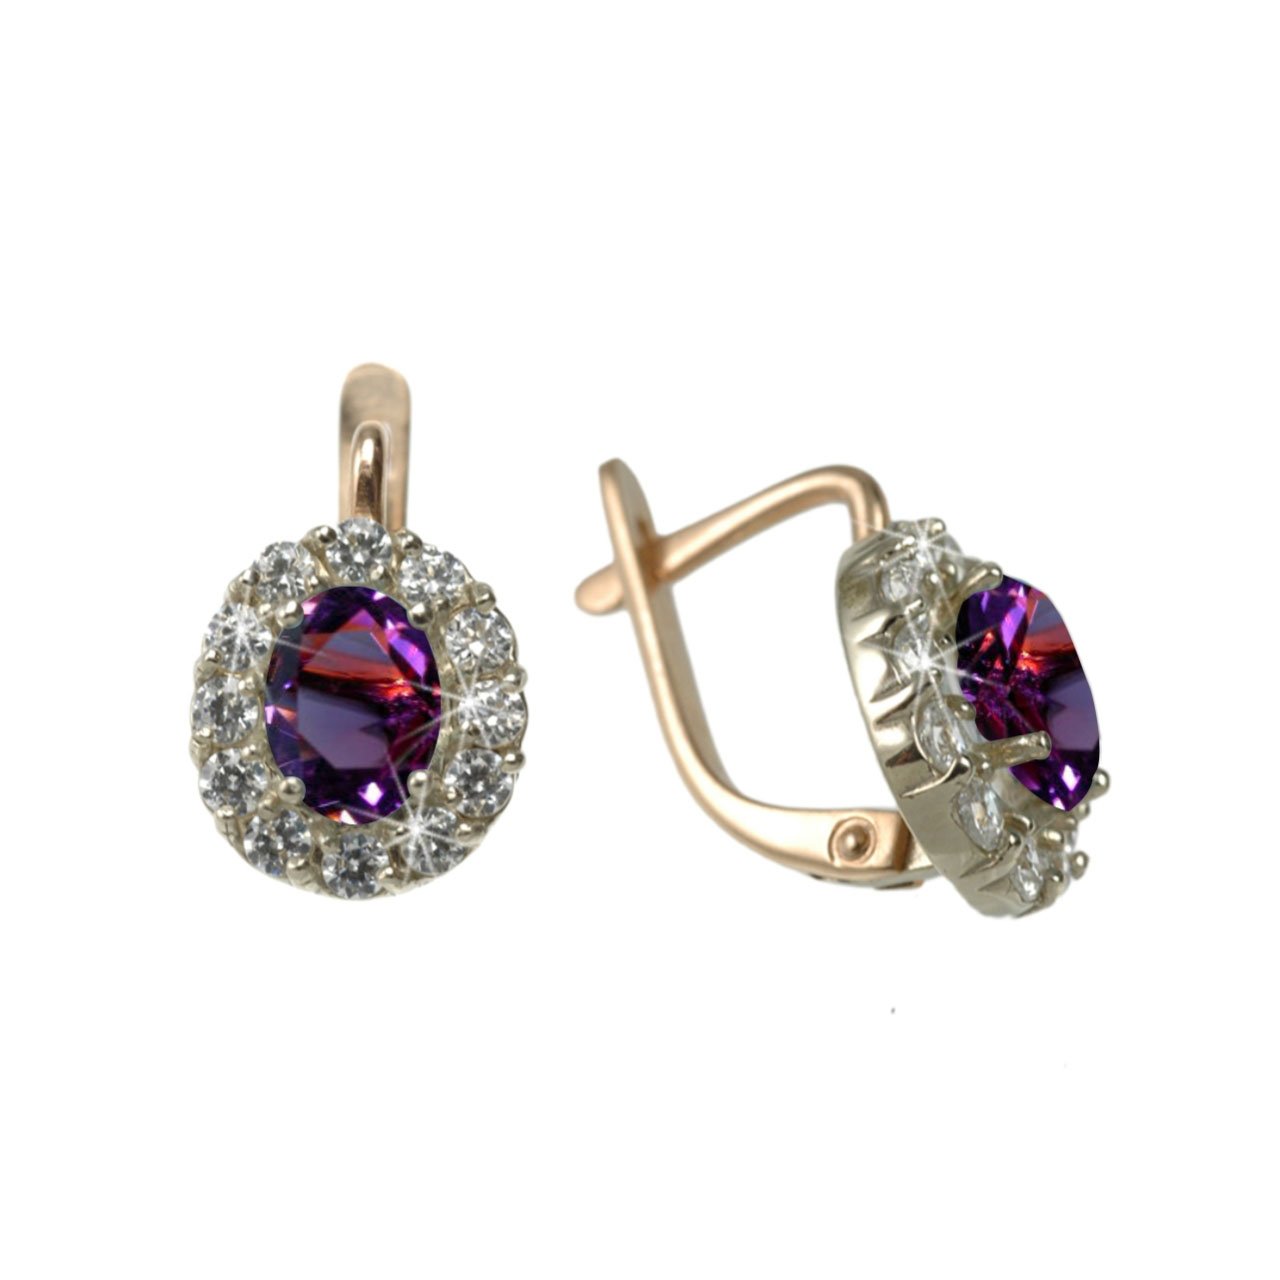 Amethyst & Swarovski CZ Halo Earrings